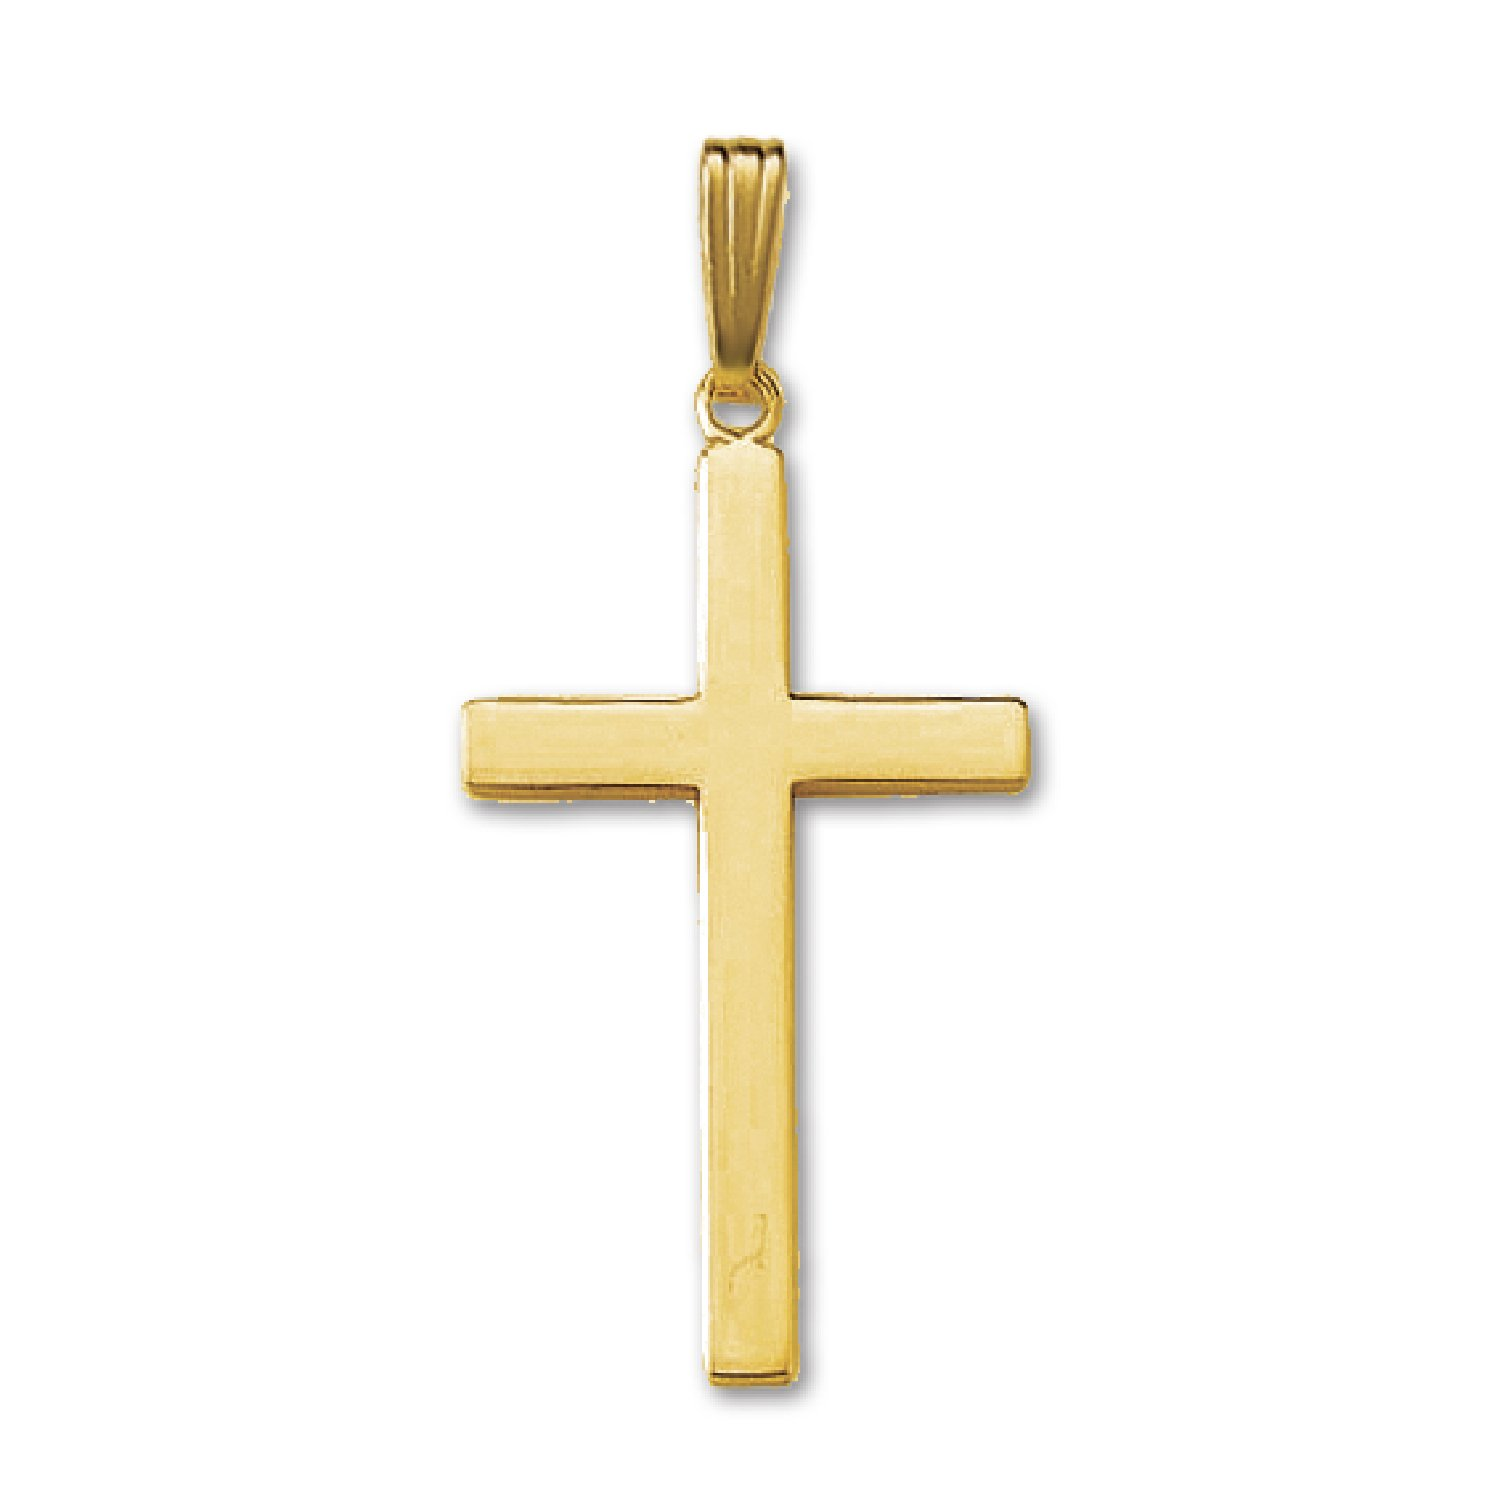 Genuine 14K Yellow Gold Solid Cross Pendant (1''x5/8'') by ITI Findings